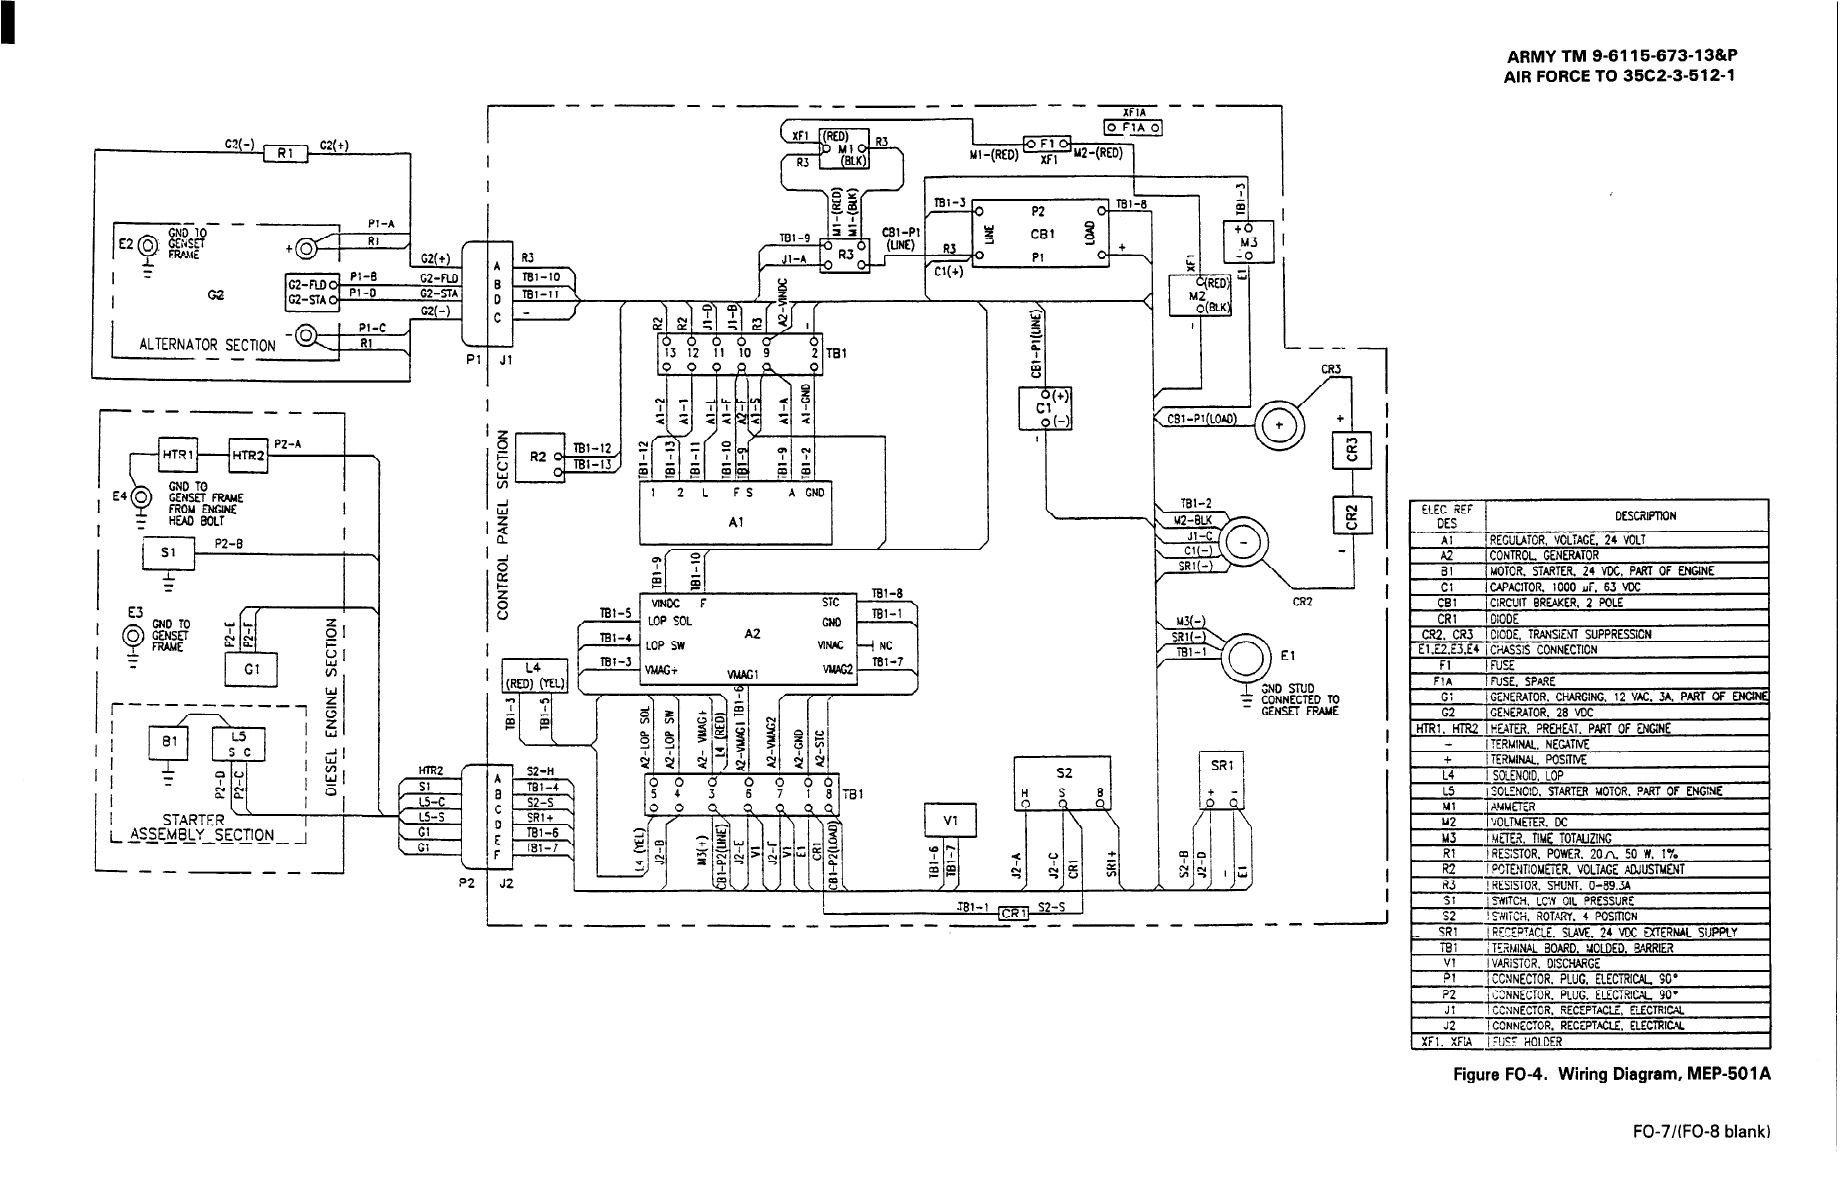 24 Volt Generator Regulator Wiring Diagram Trusted Diagrams 12v Military Generators Example Electrical U2022 Voltage Connection